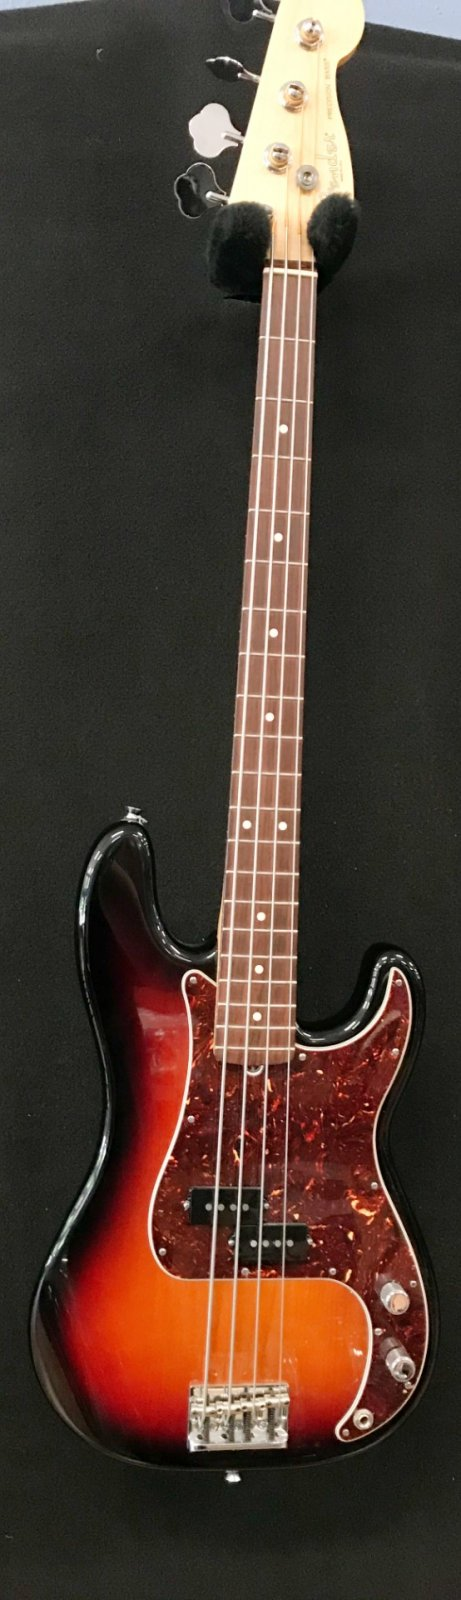 Used 12' Fender American Special P bass